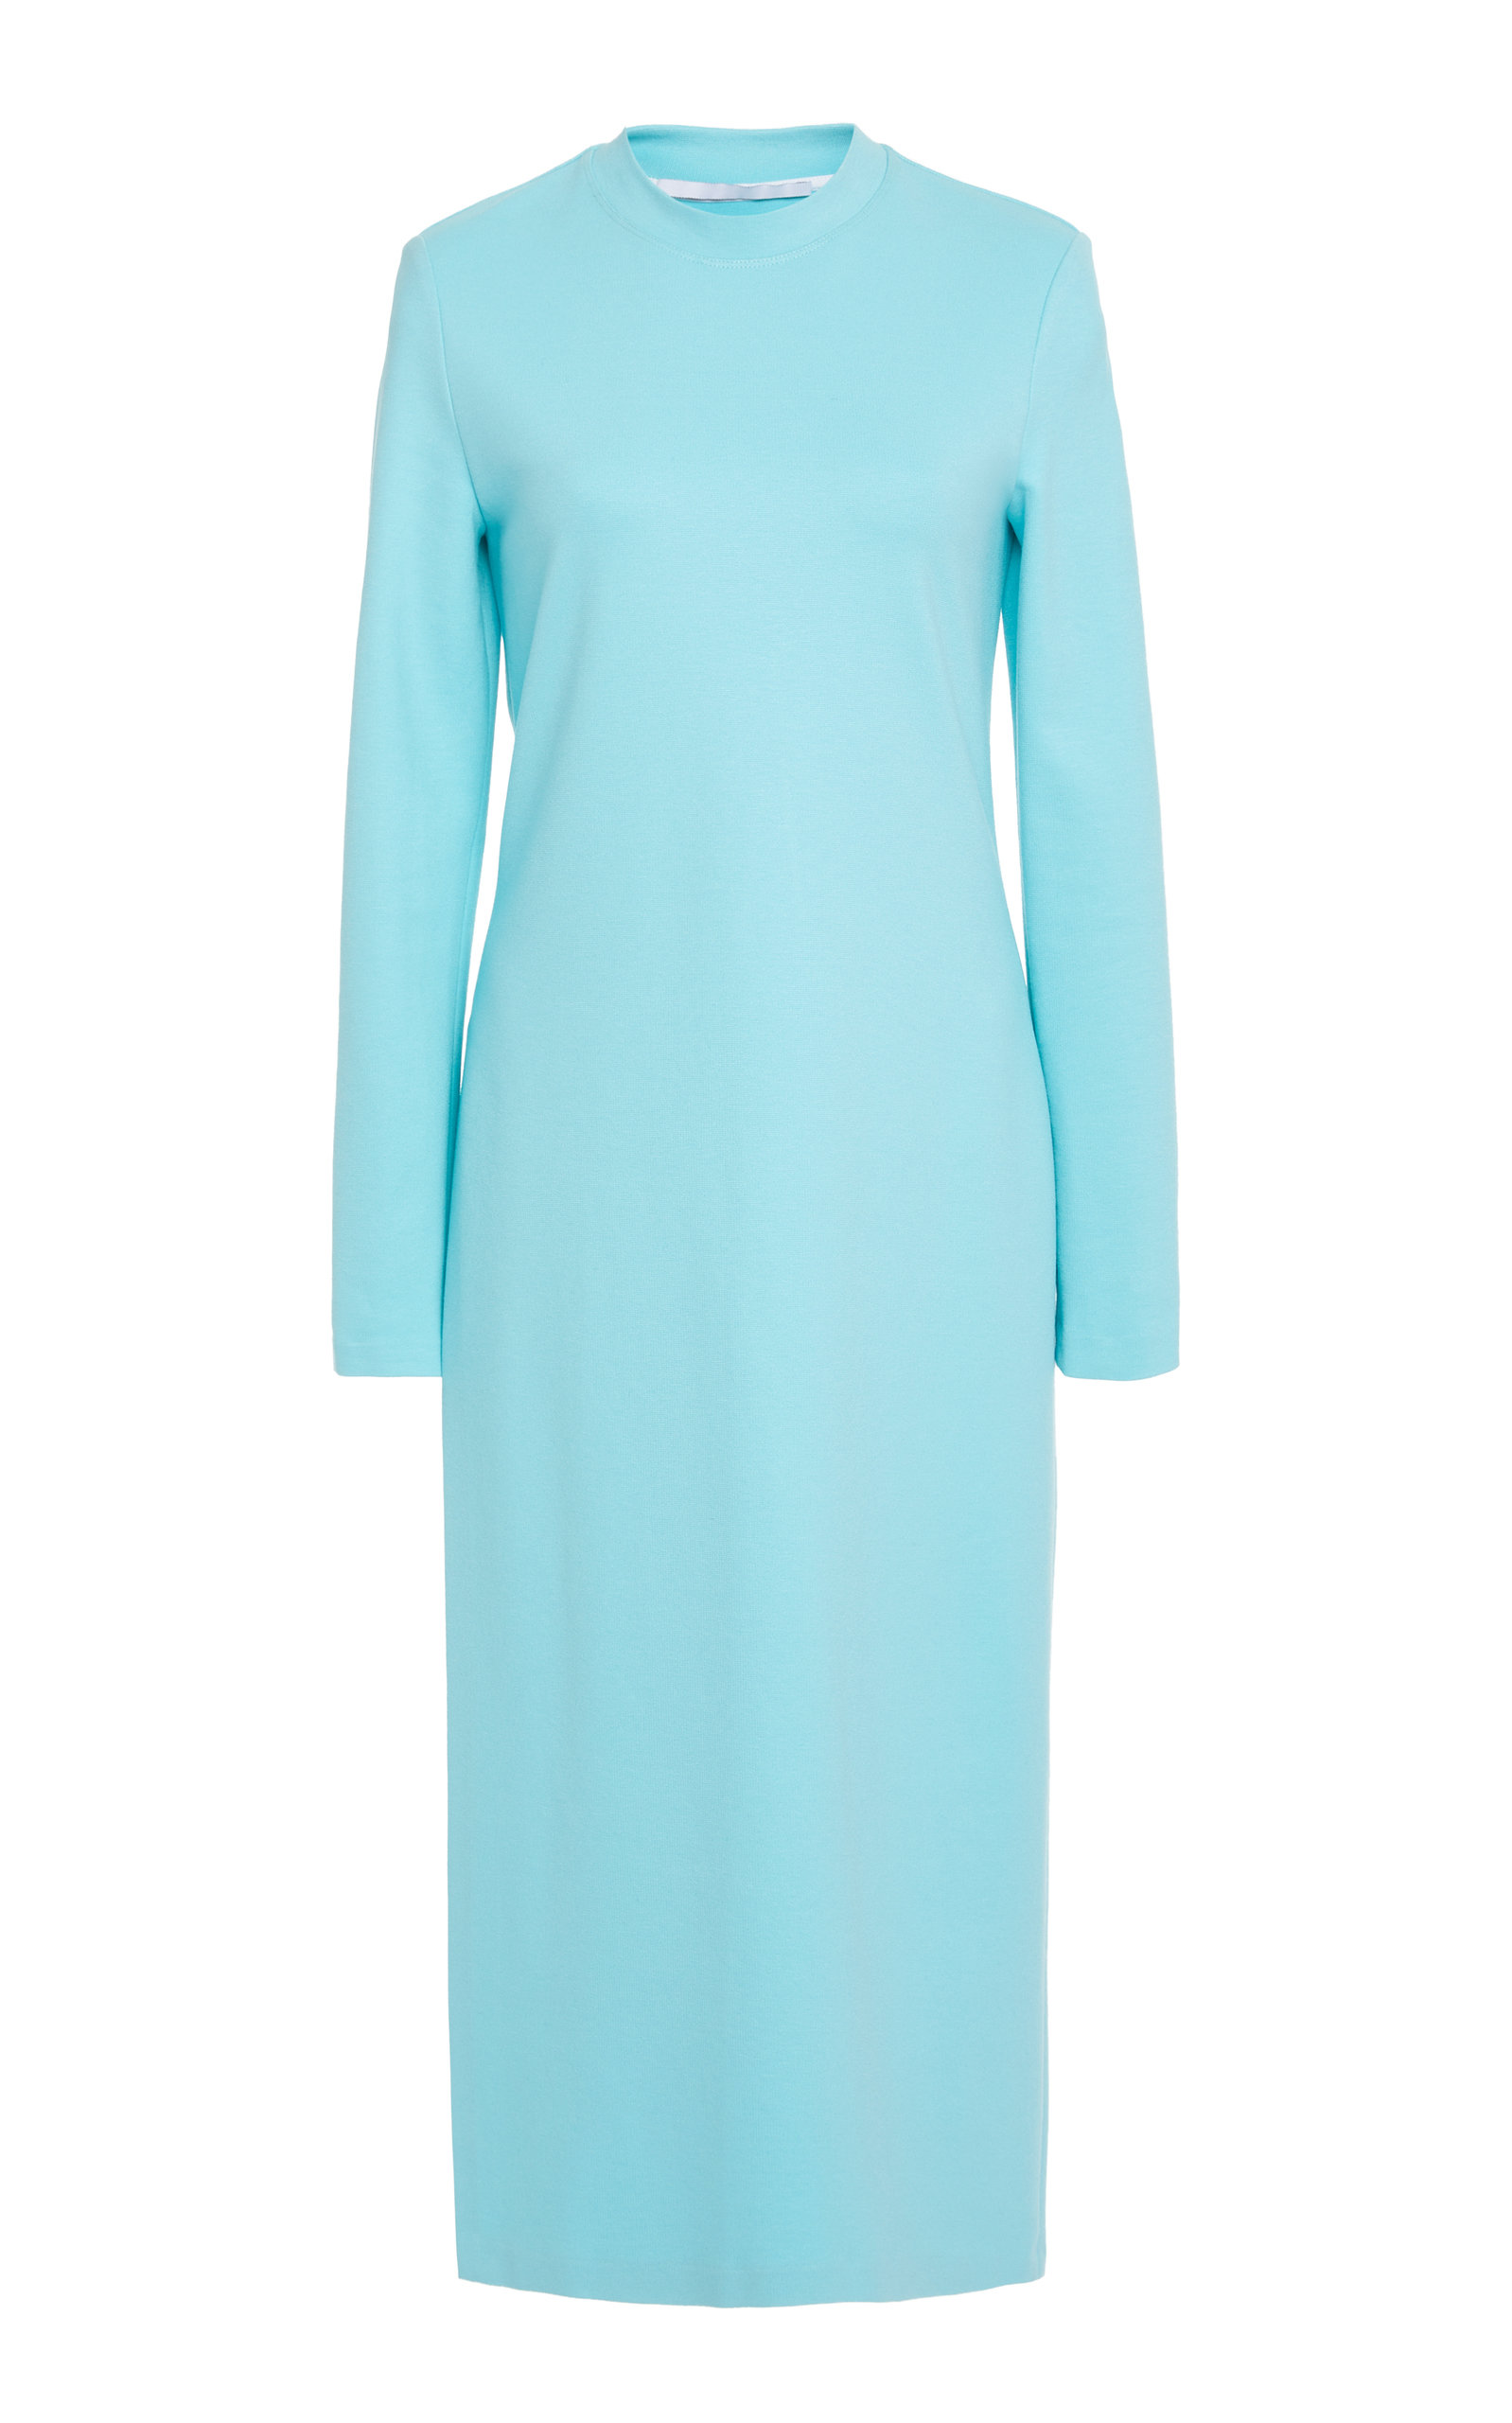 ROSETTA GETTY Front Slit Stretch-Crepe Tunic in Blue